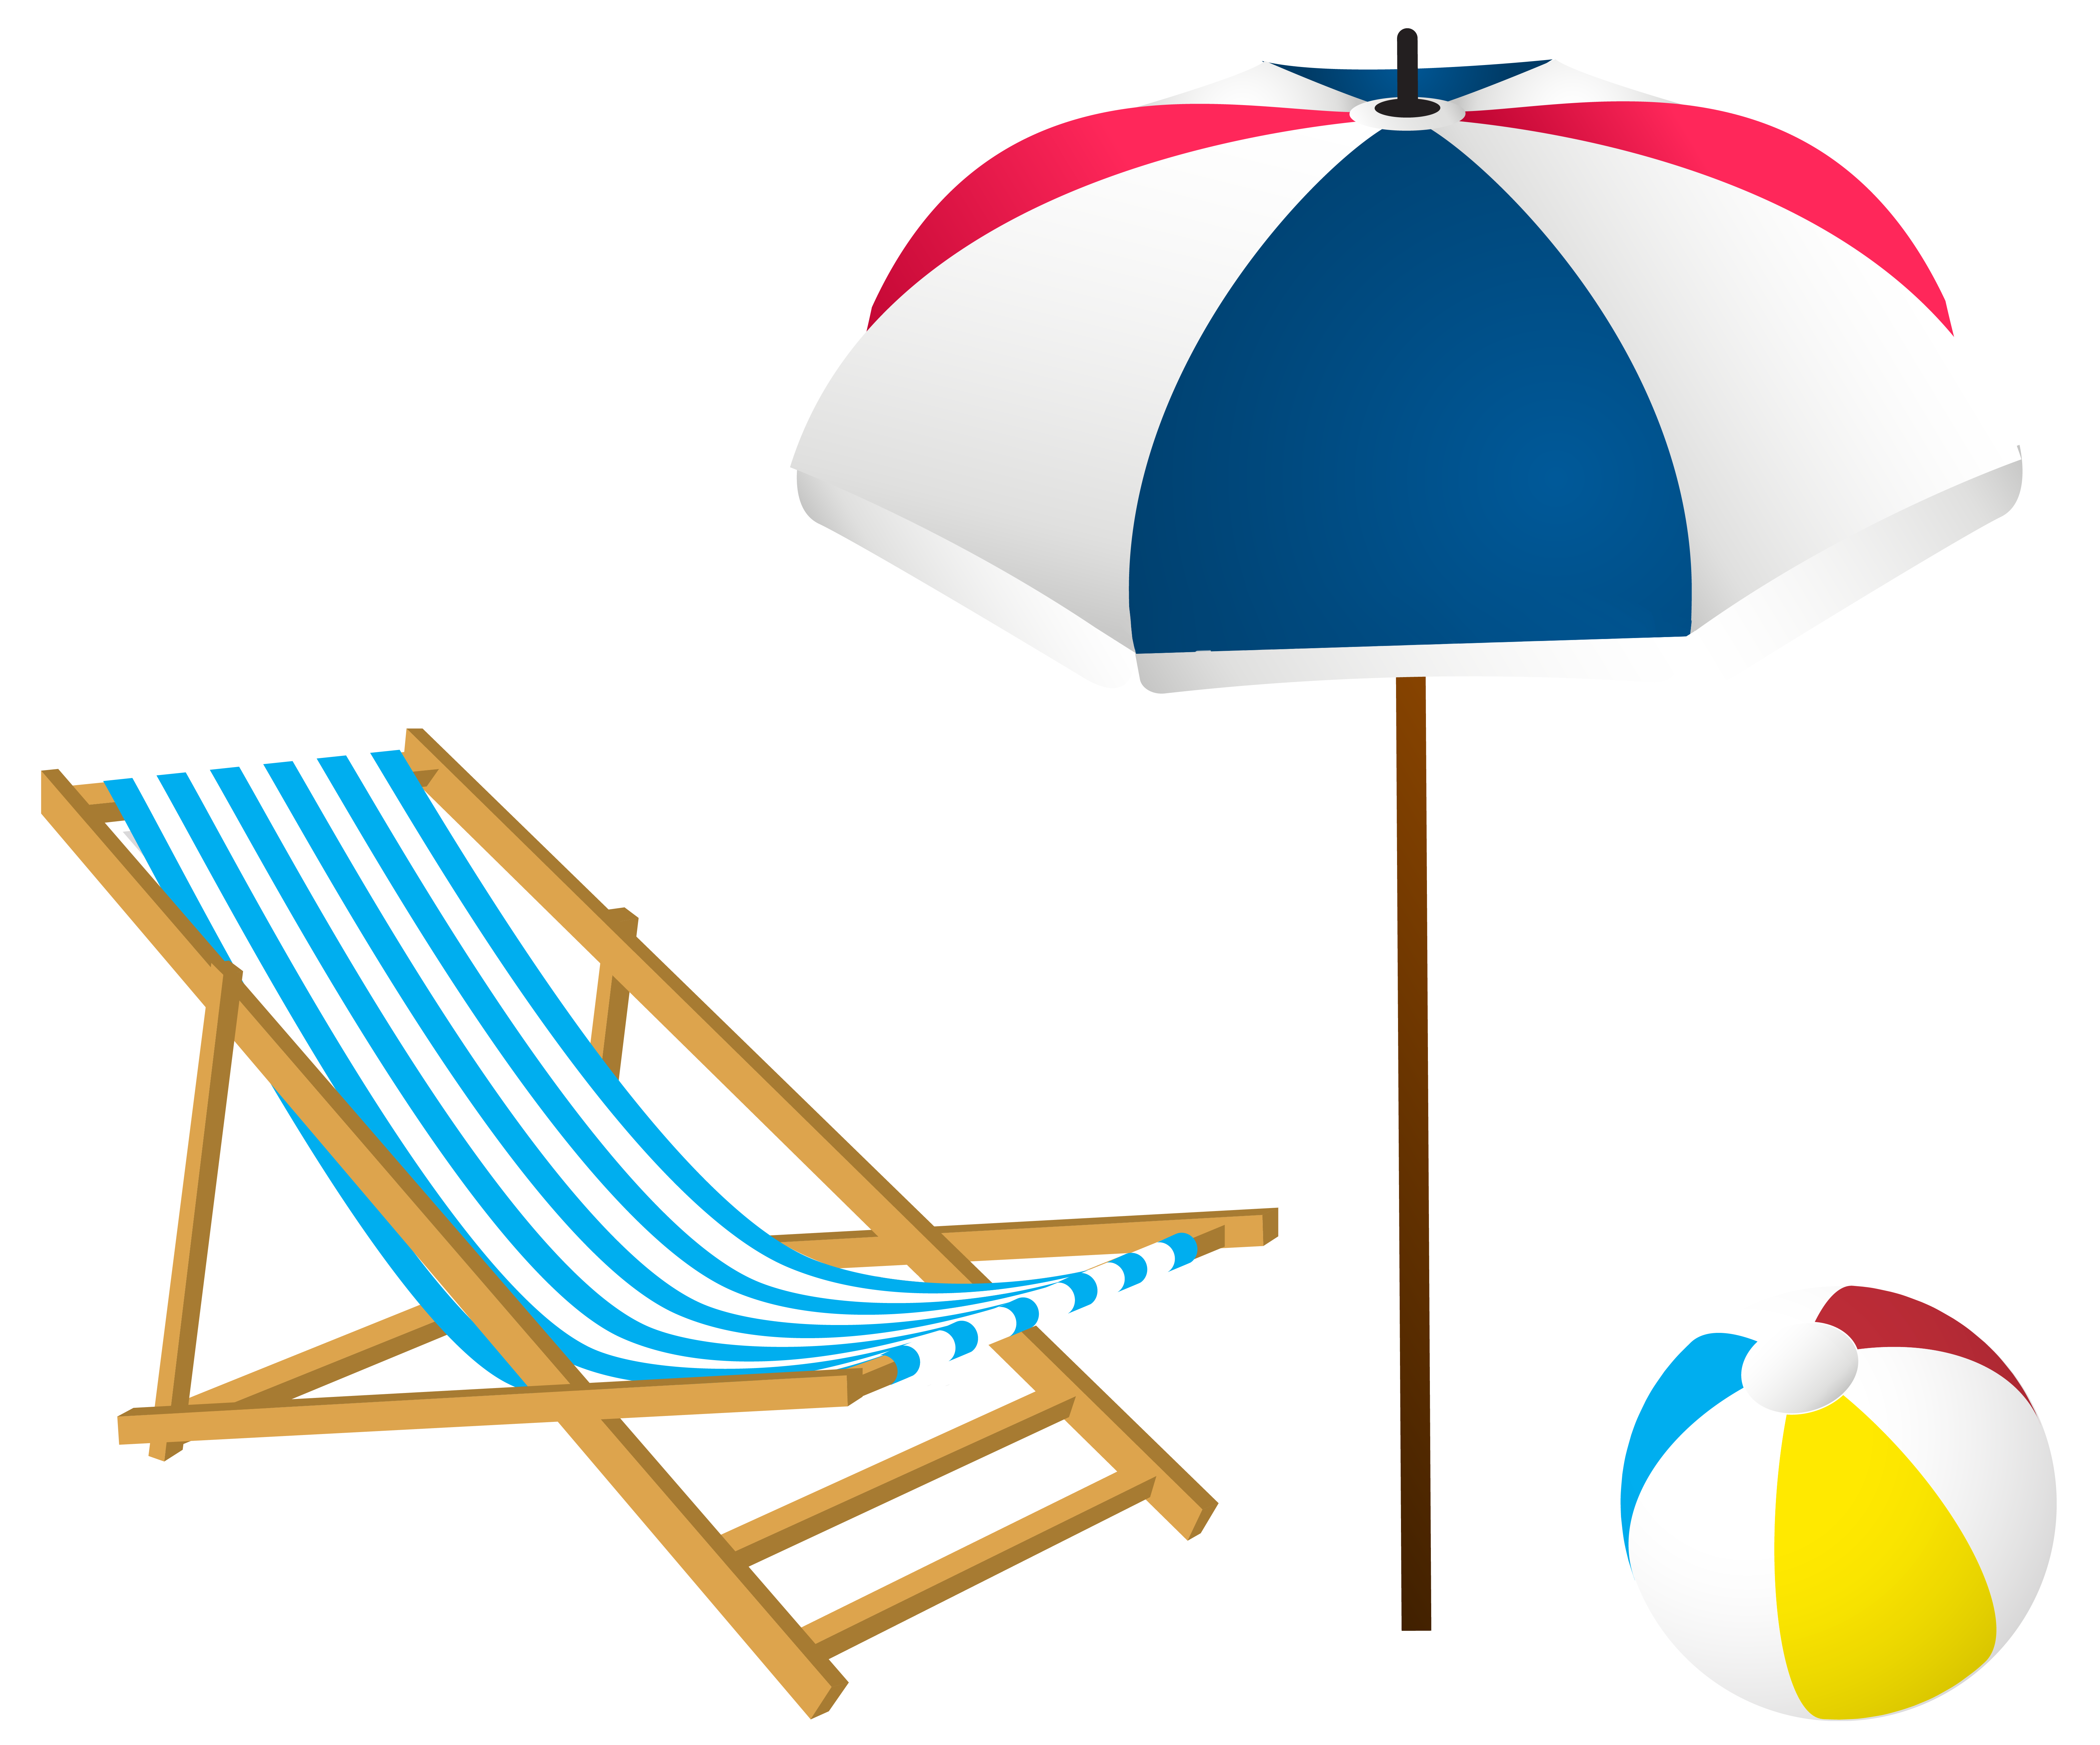 Summer Background Clipart.